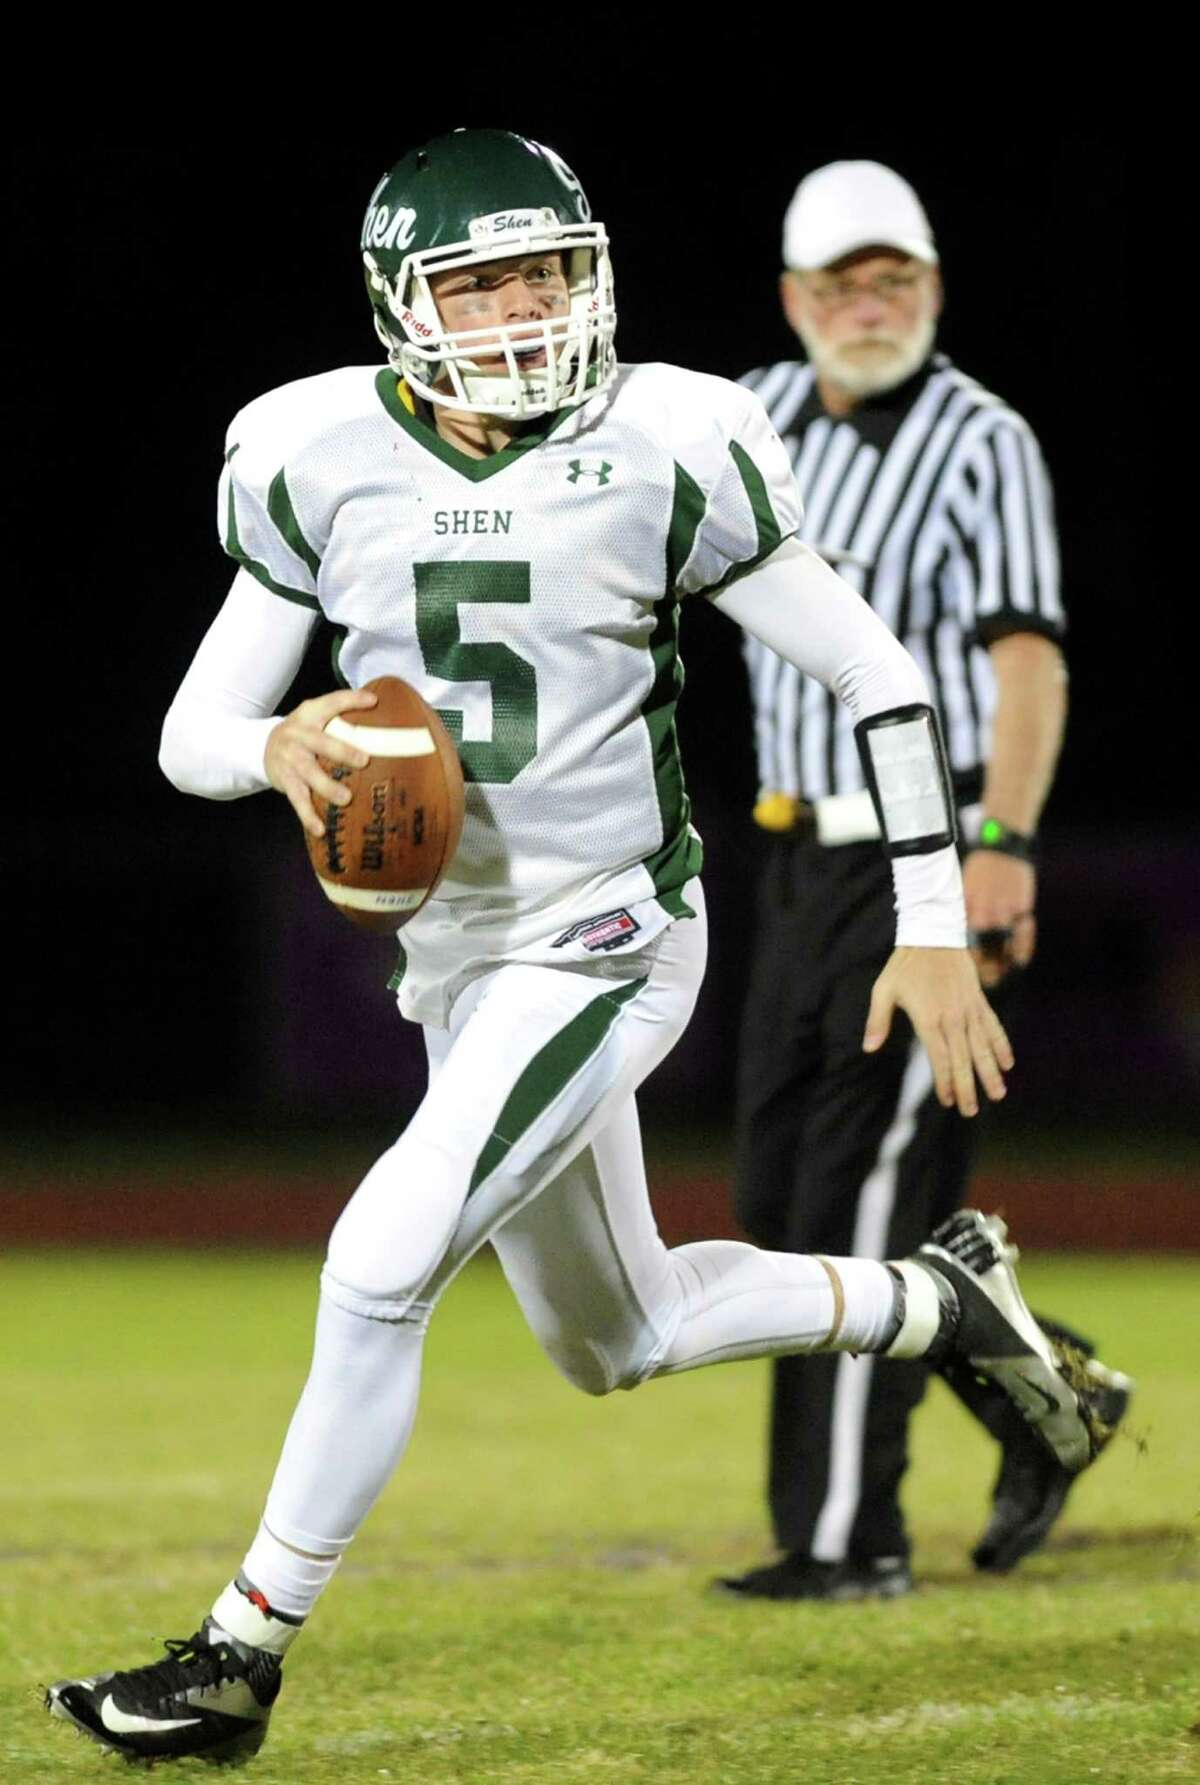 It's Super Bowl Weekend! Section titles are on the line. Games include Shen vs. CBA, Queensbury vs. Burnt Hills, and more. View game schedule in our high school sports section.